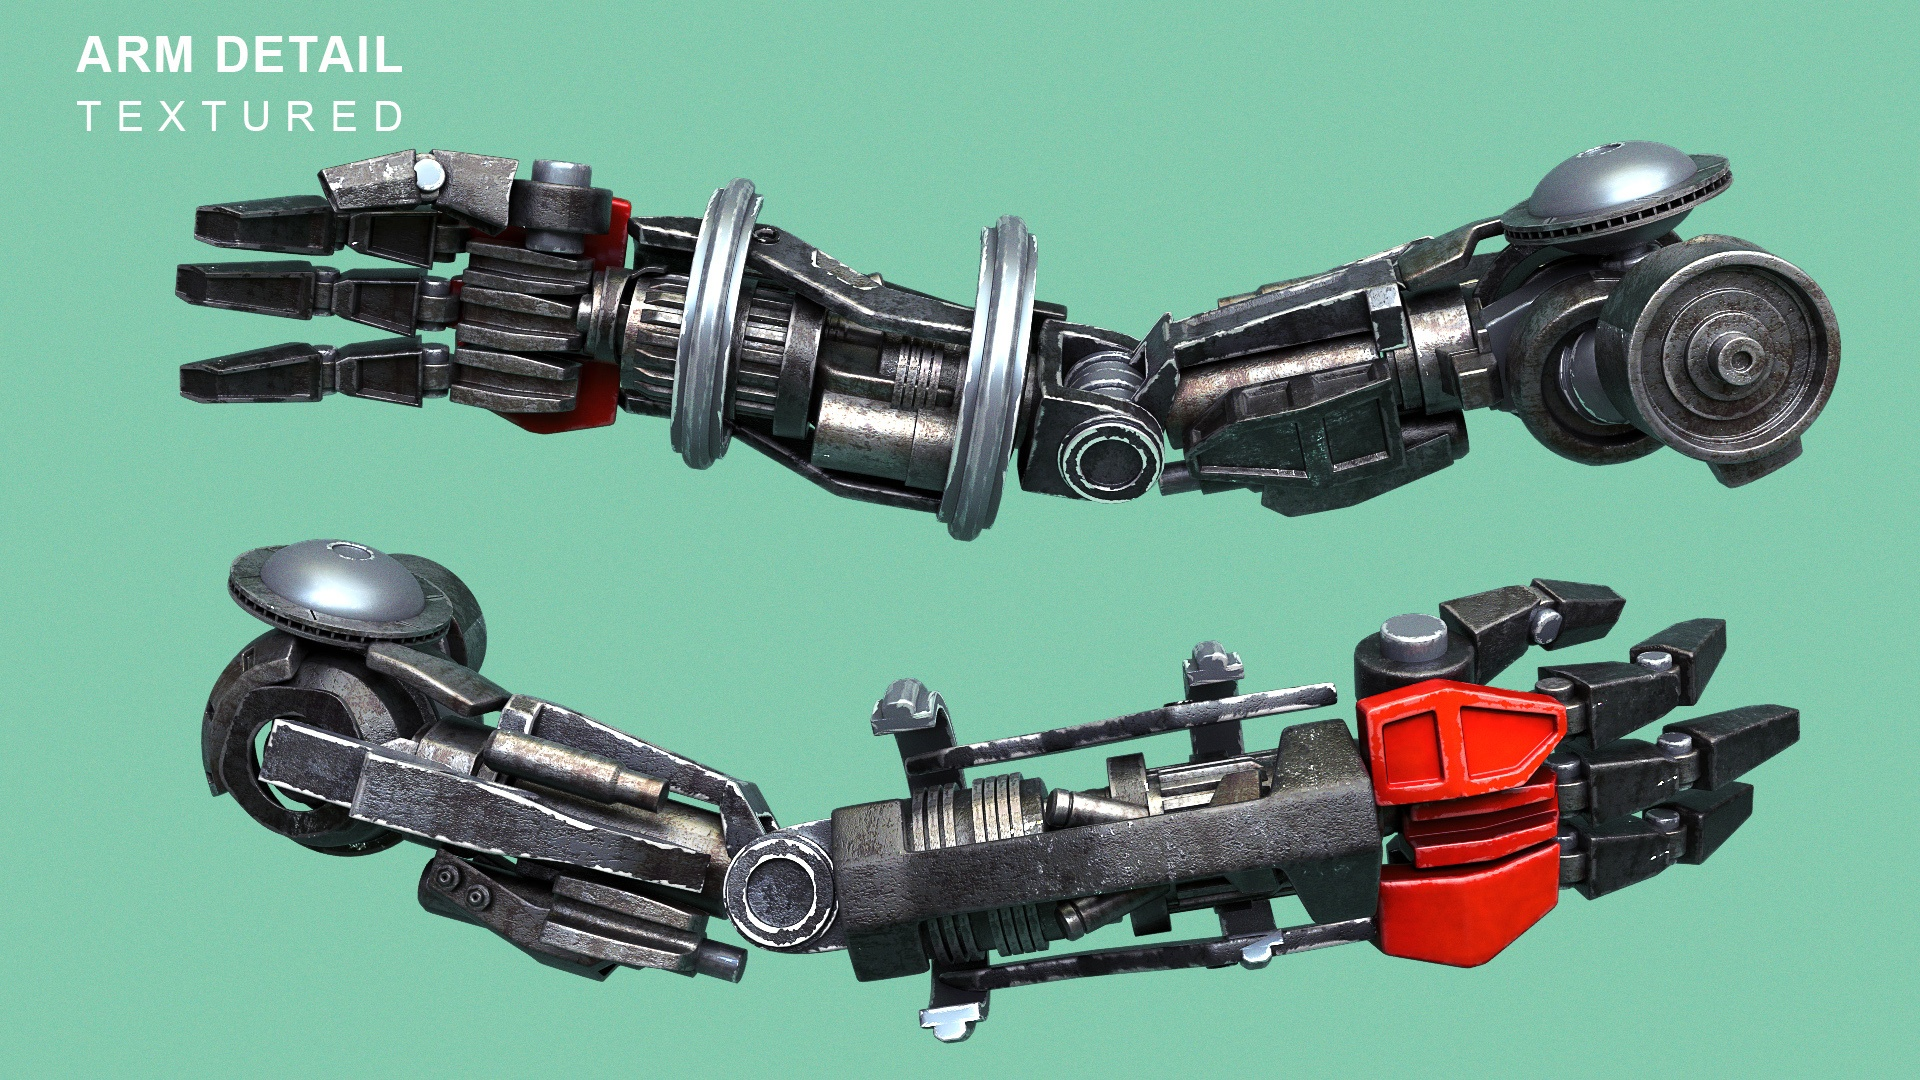 CGI render of a robot arm on a green background